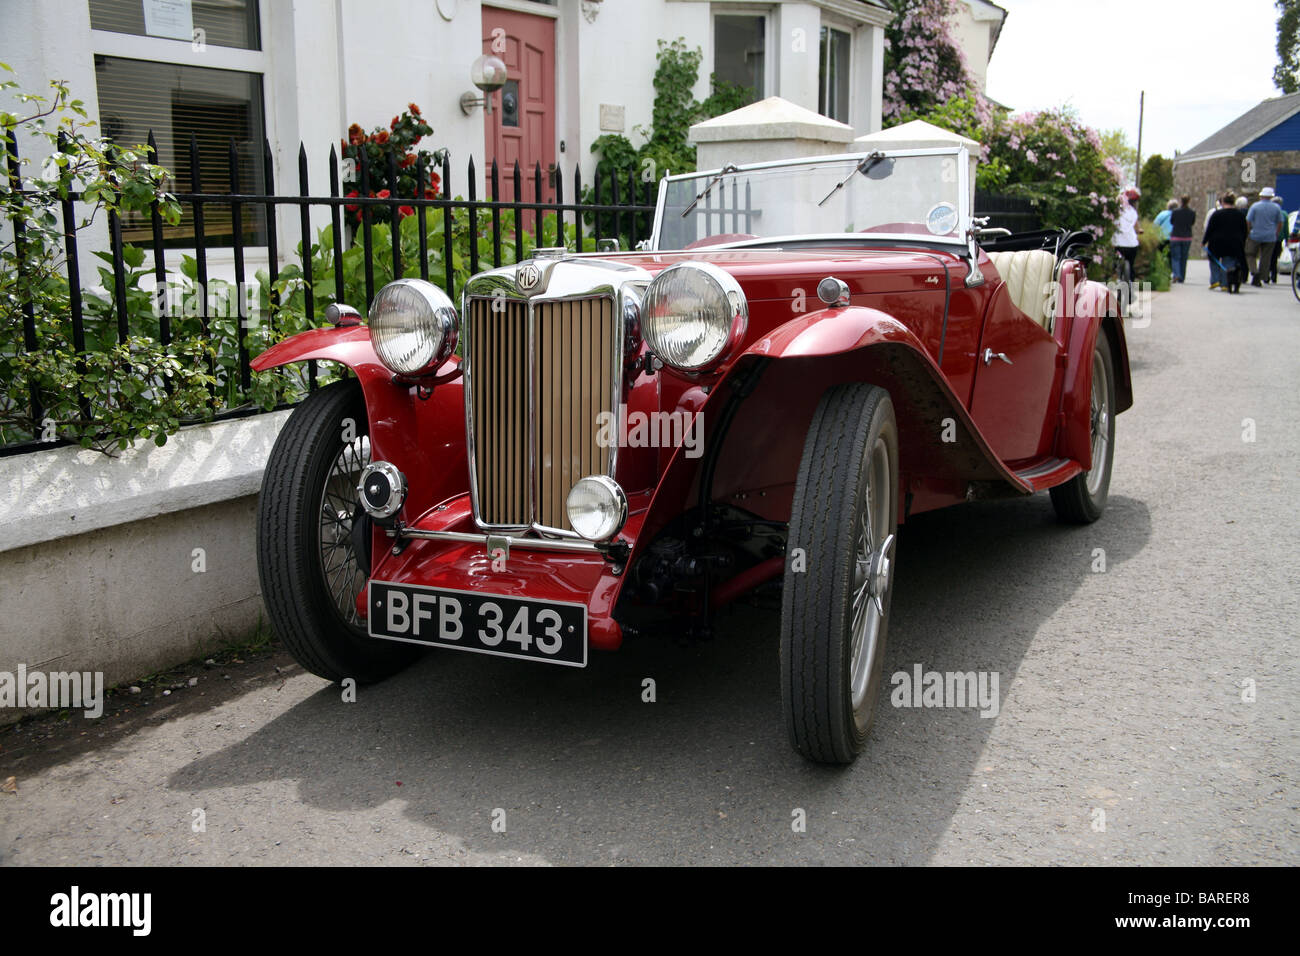 Mg Old Sports Car Stock Photos & Mg Old Sports Car Stock